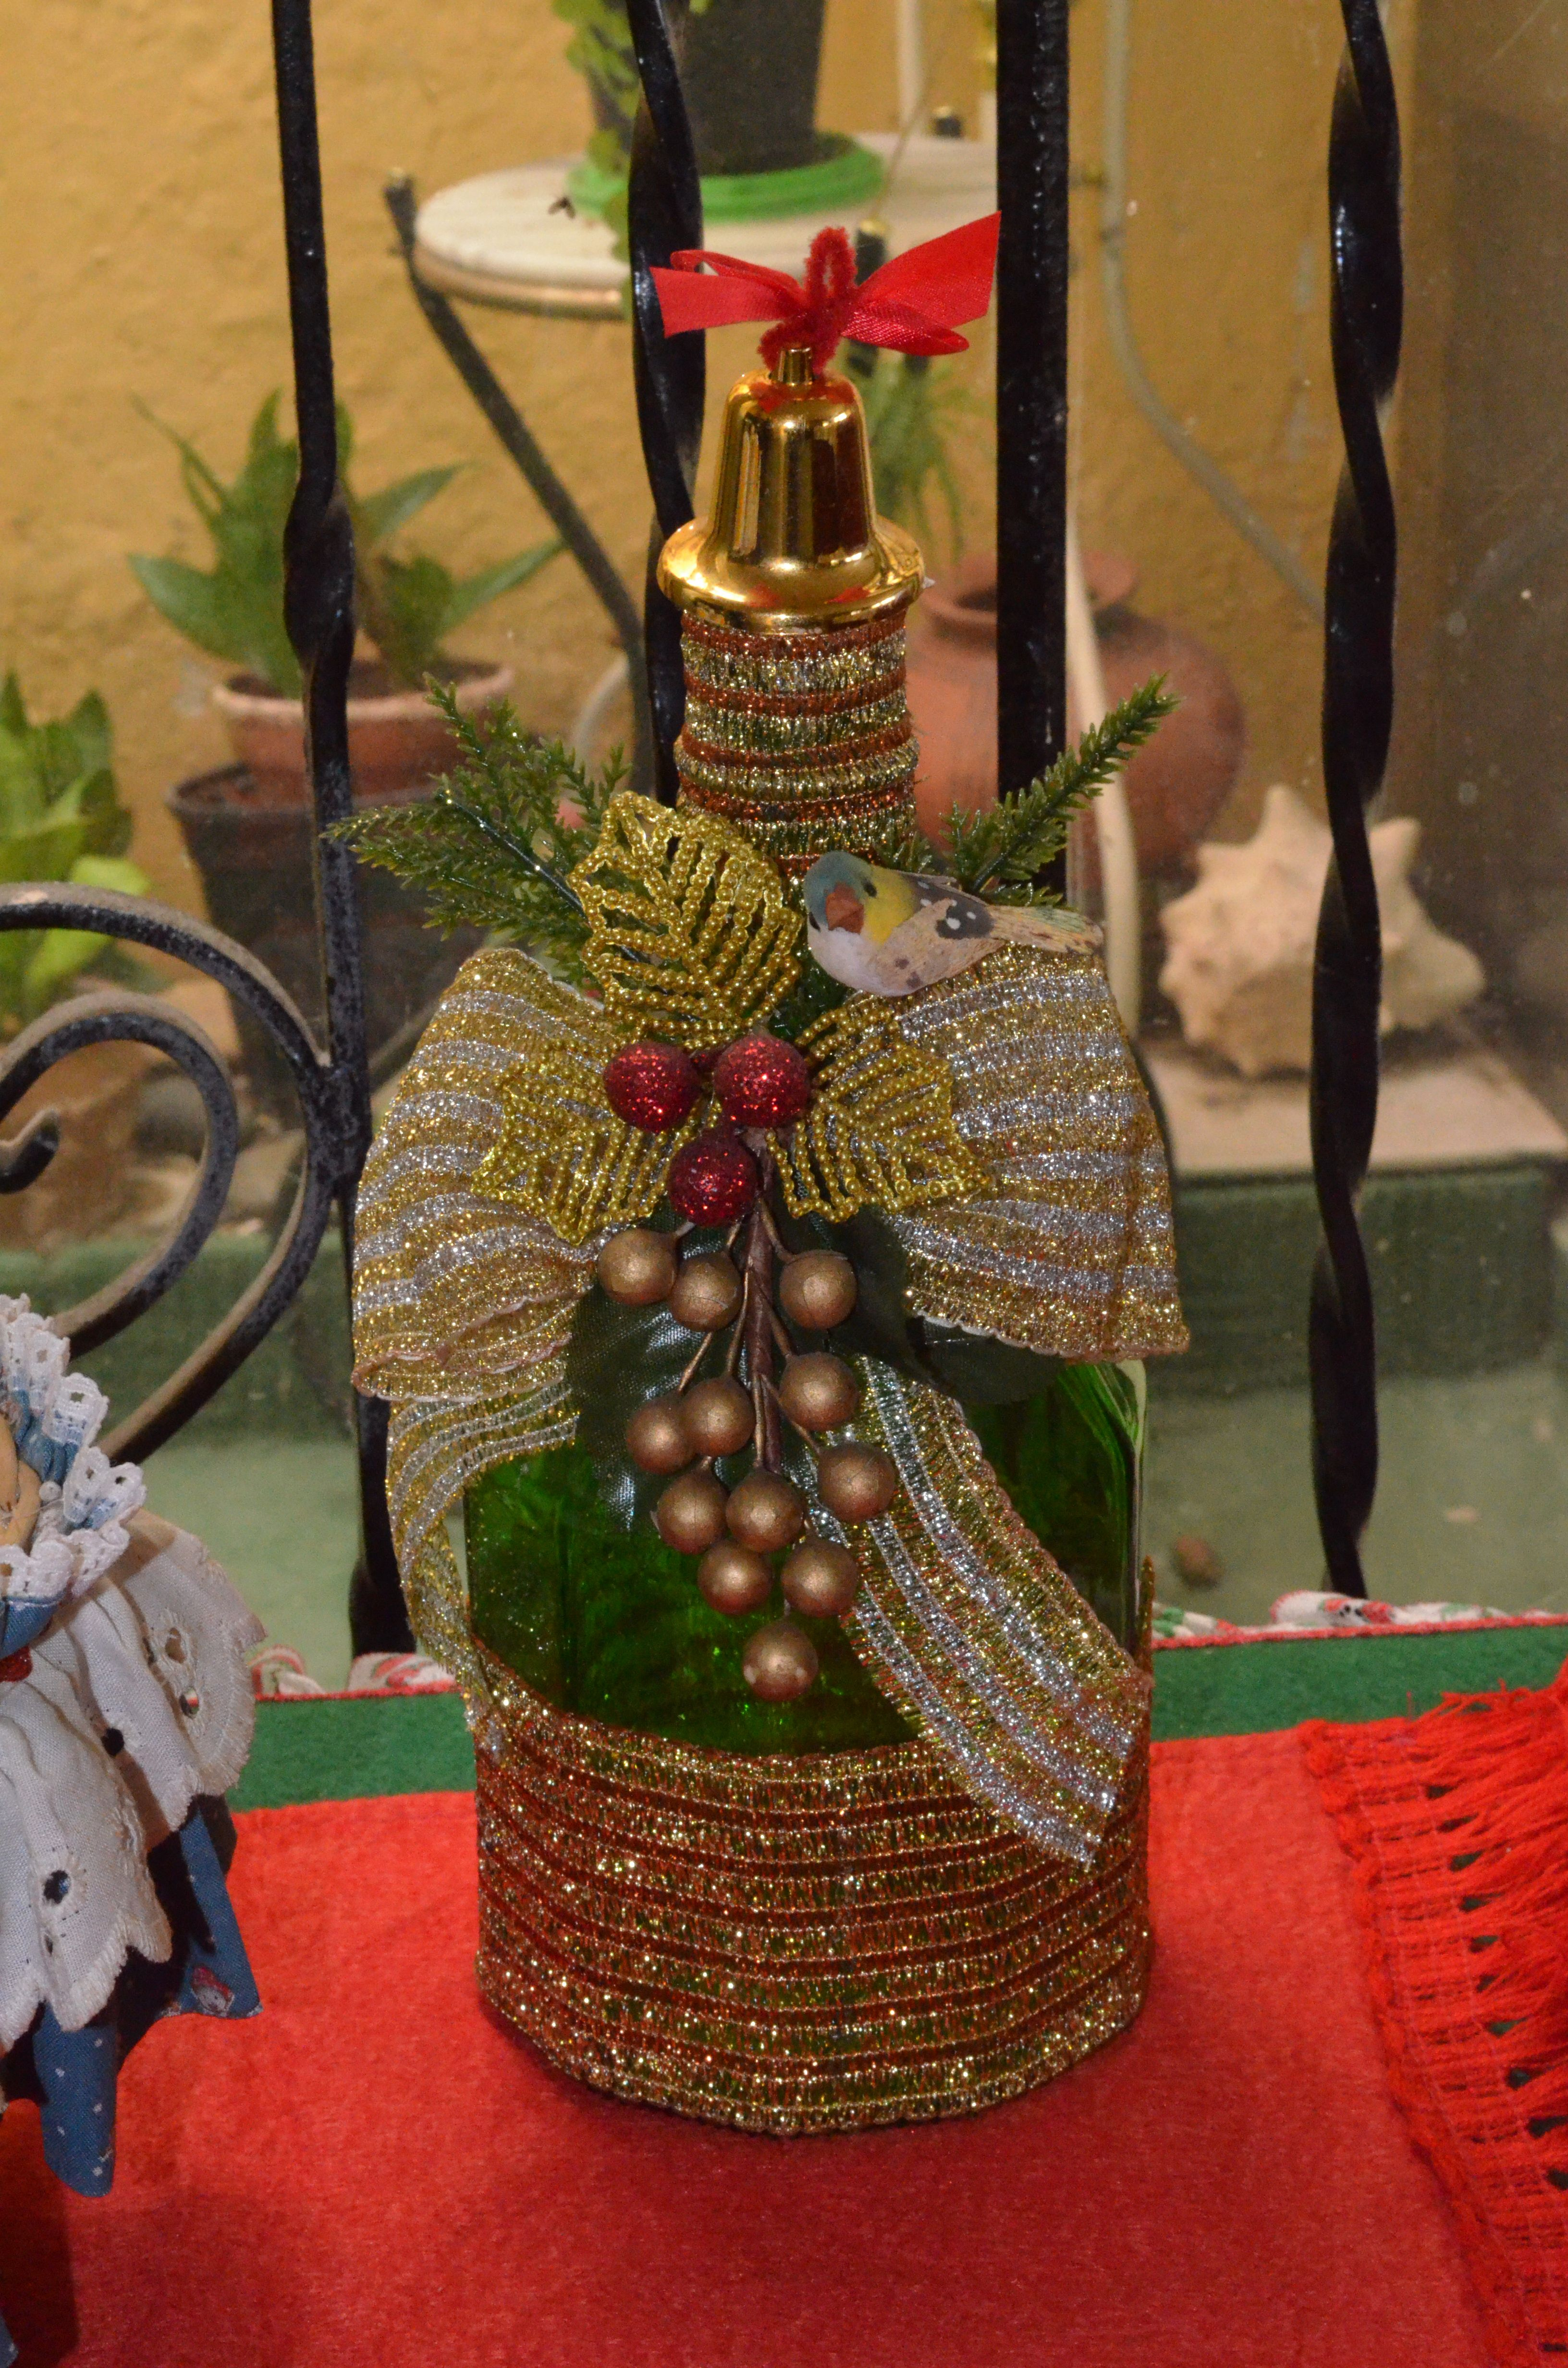 Botellas navide as botellas garrafas tarros pinterest - Botellas de vino decoradas para navidad ...